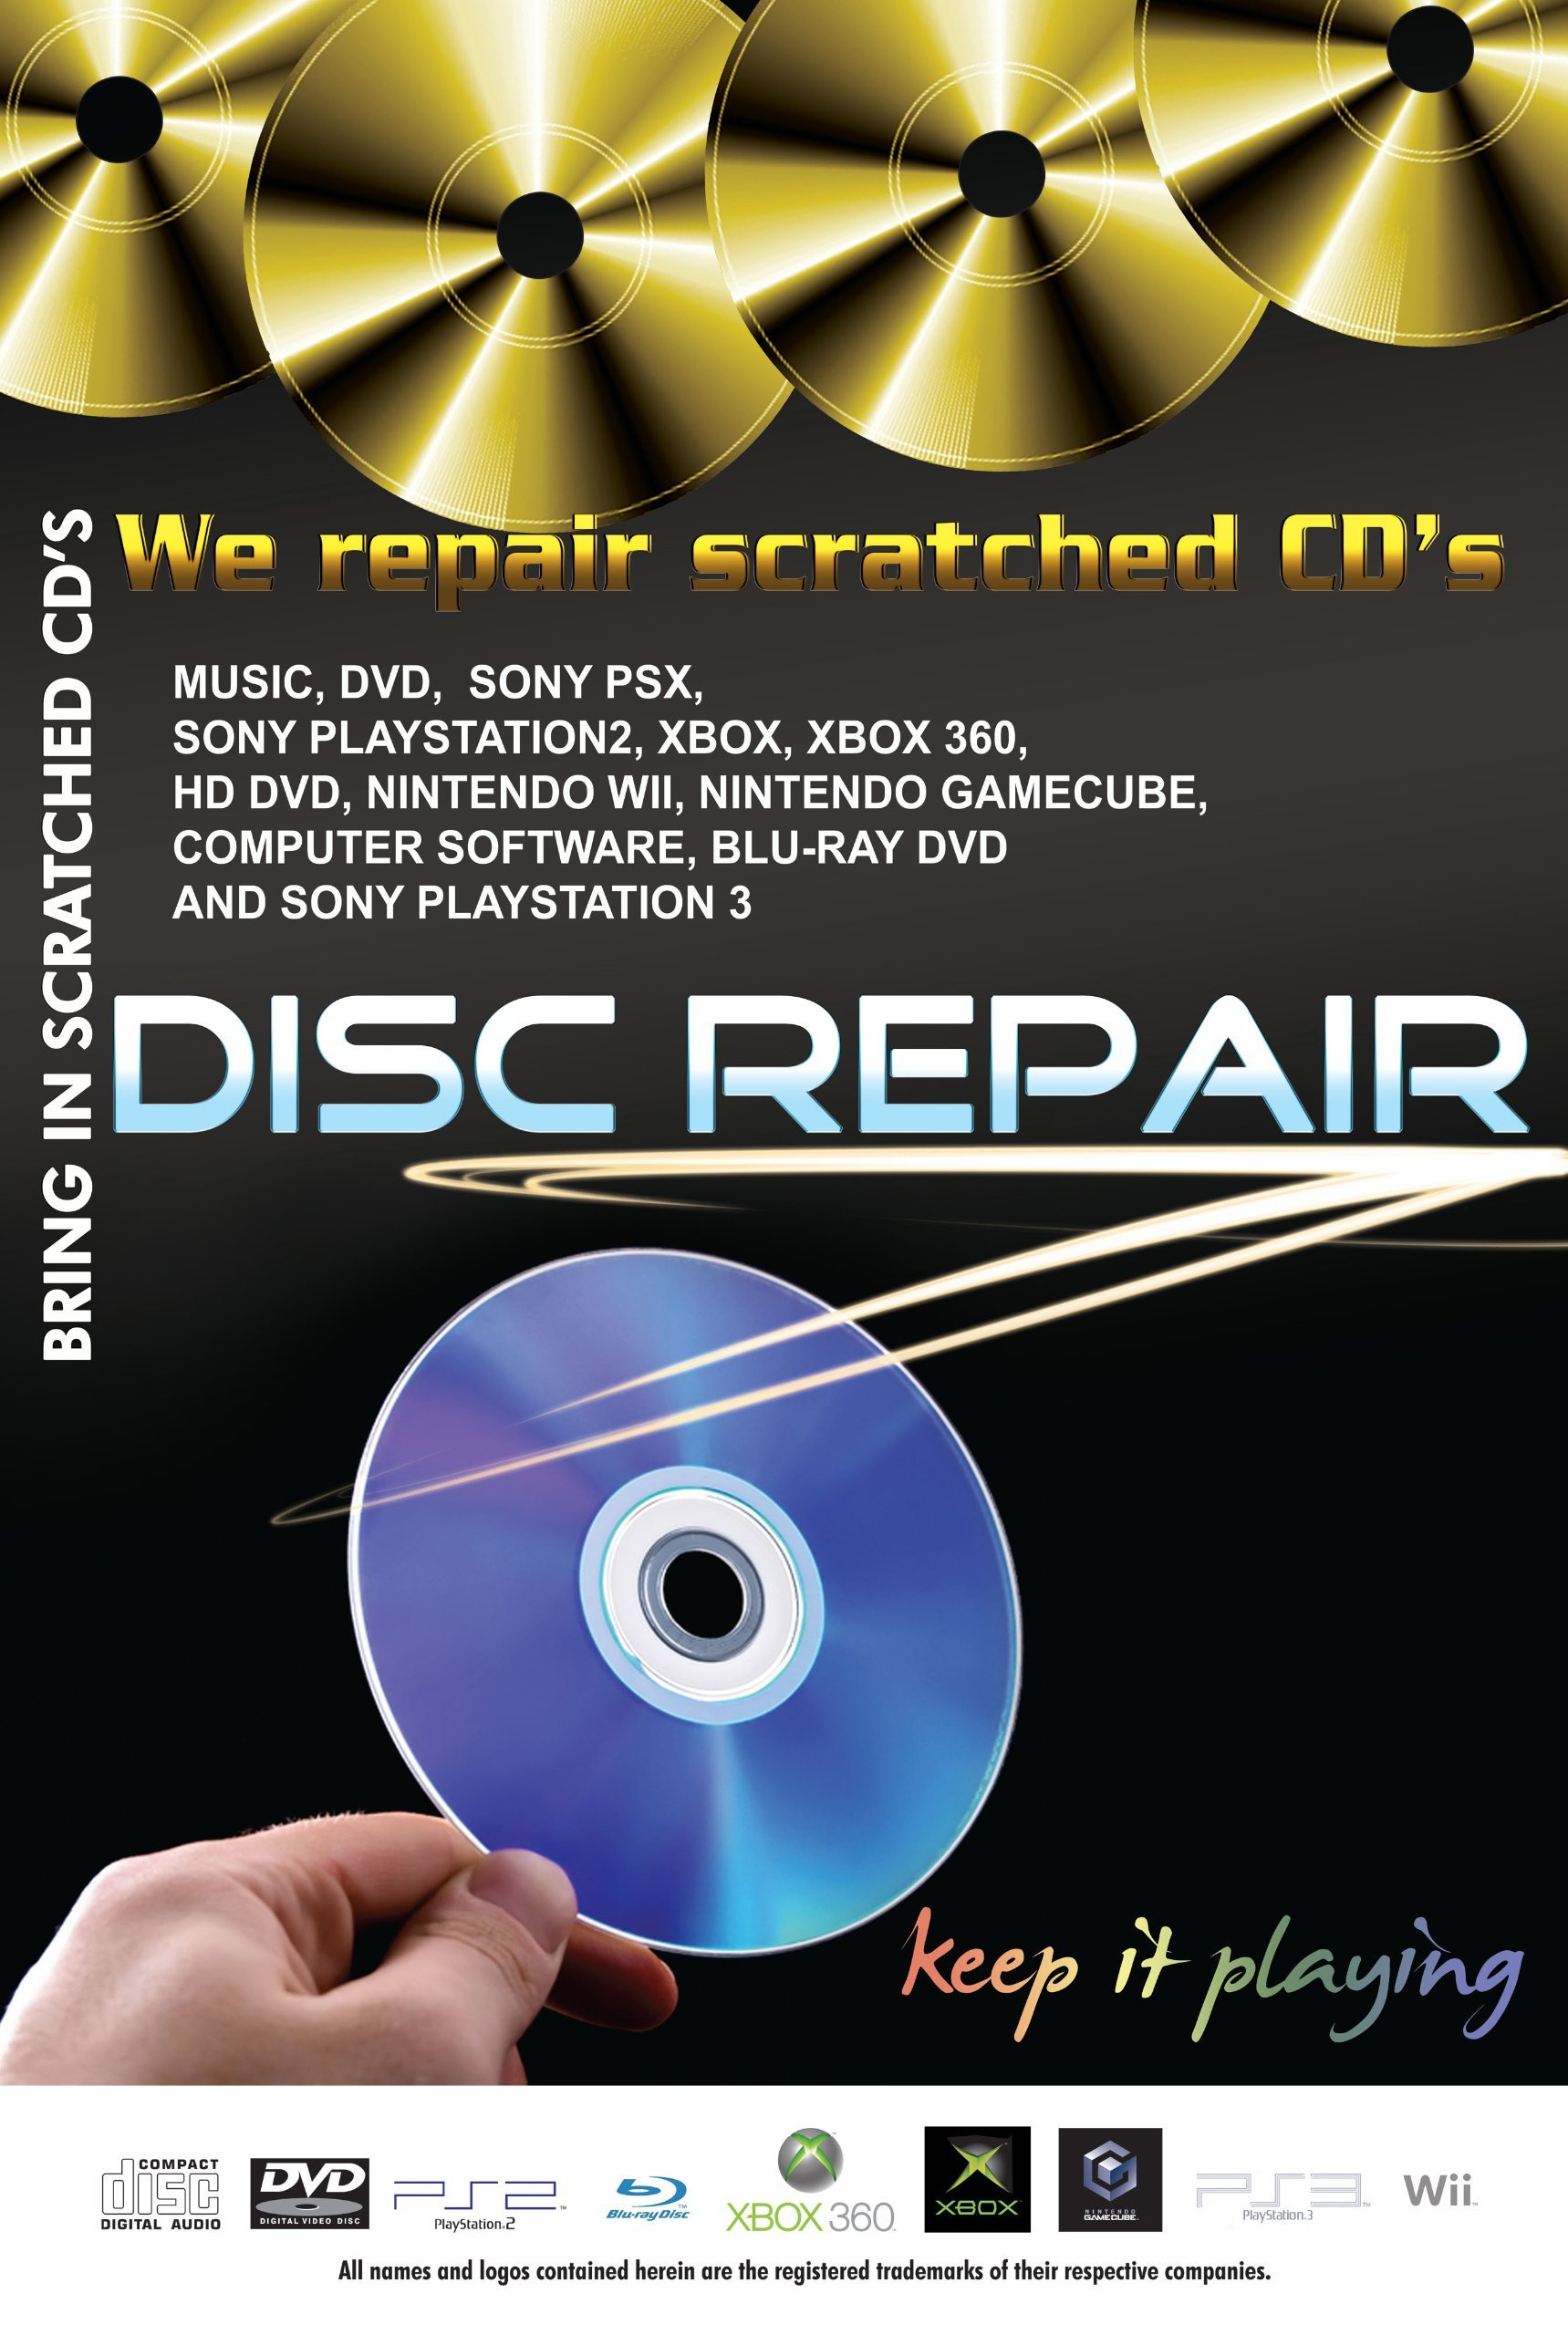 JFJ Disc Repair Poster by JFJ